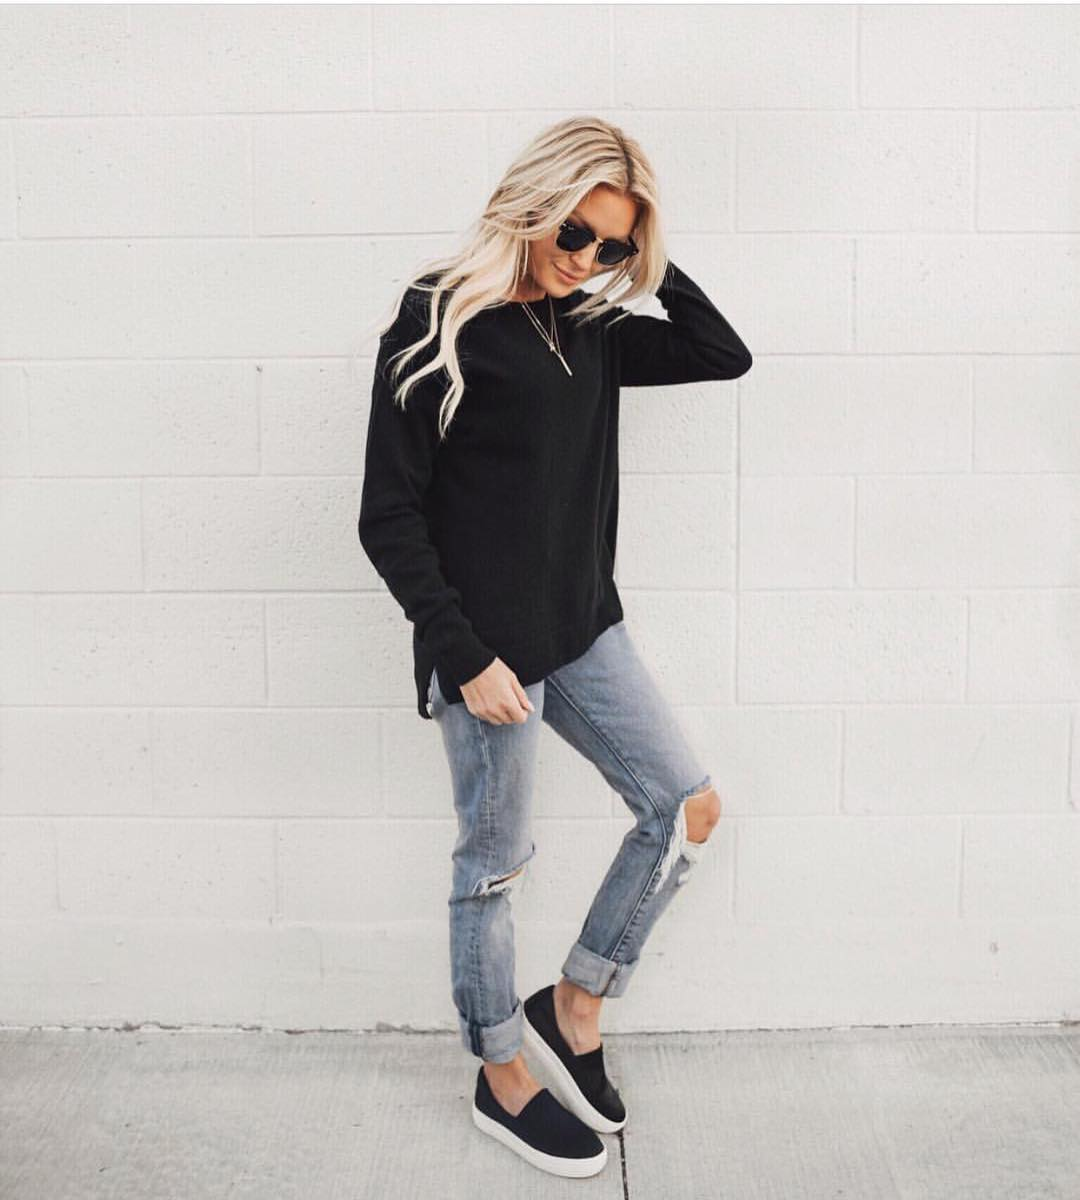 Black Oversized Sweater With Wash Blue Jeans And Black Slip On Shoes 2019